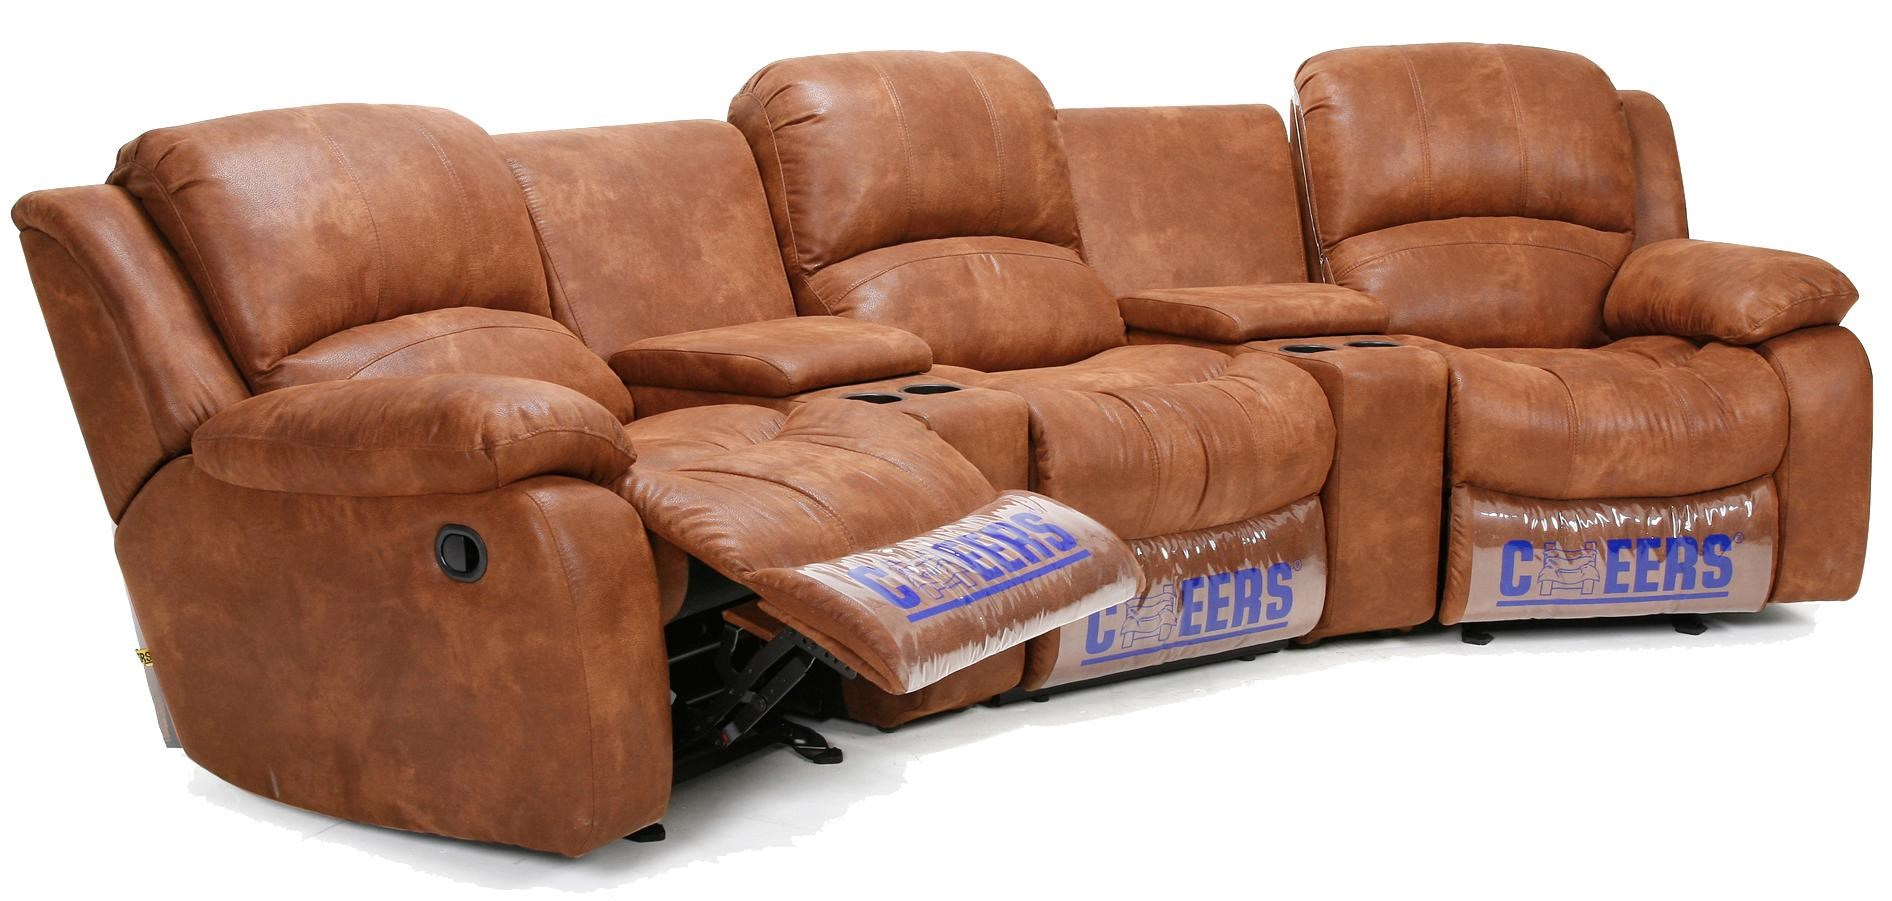 Cheers Sofa XW8251M Three Person (Double Recliner) Entertainment Room  Theater Seating